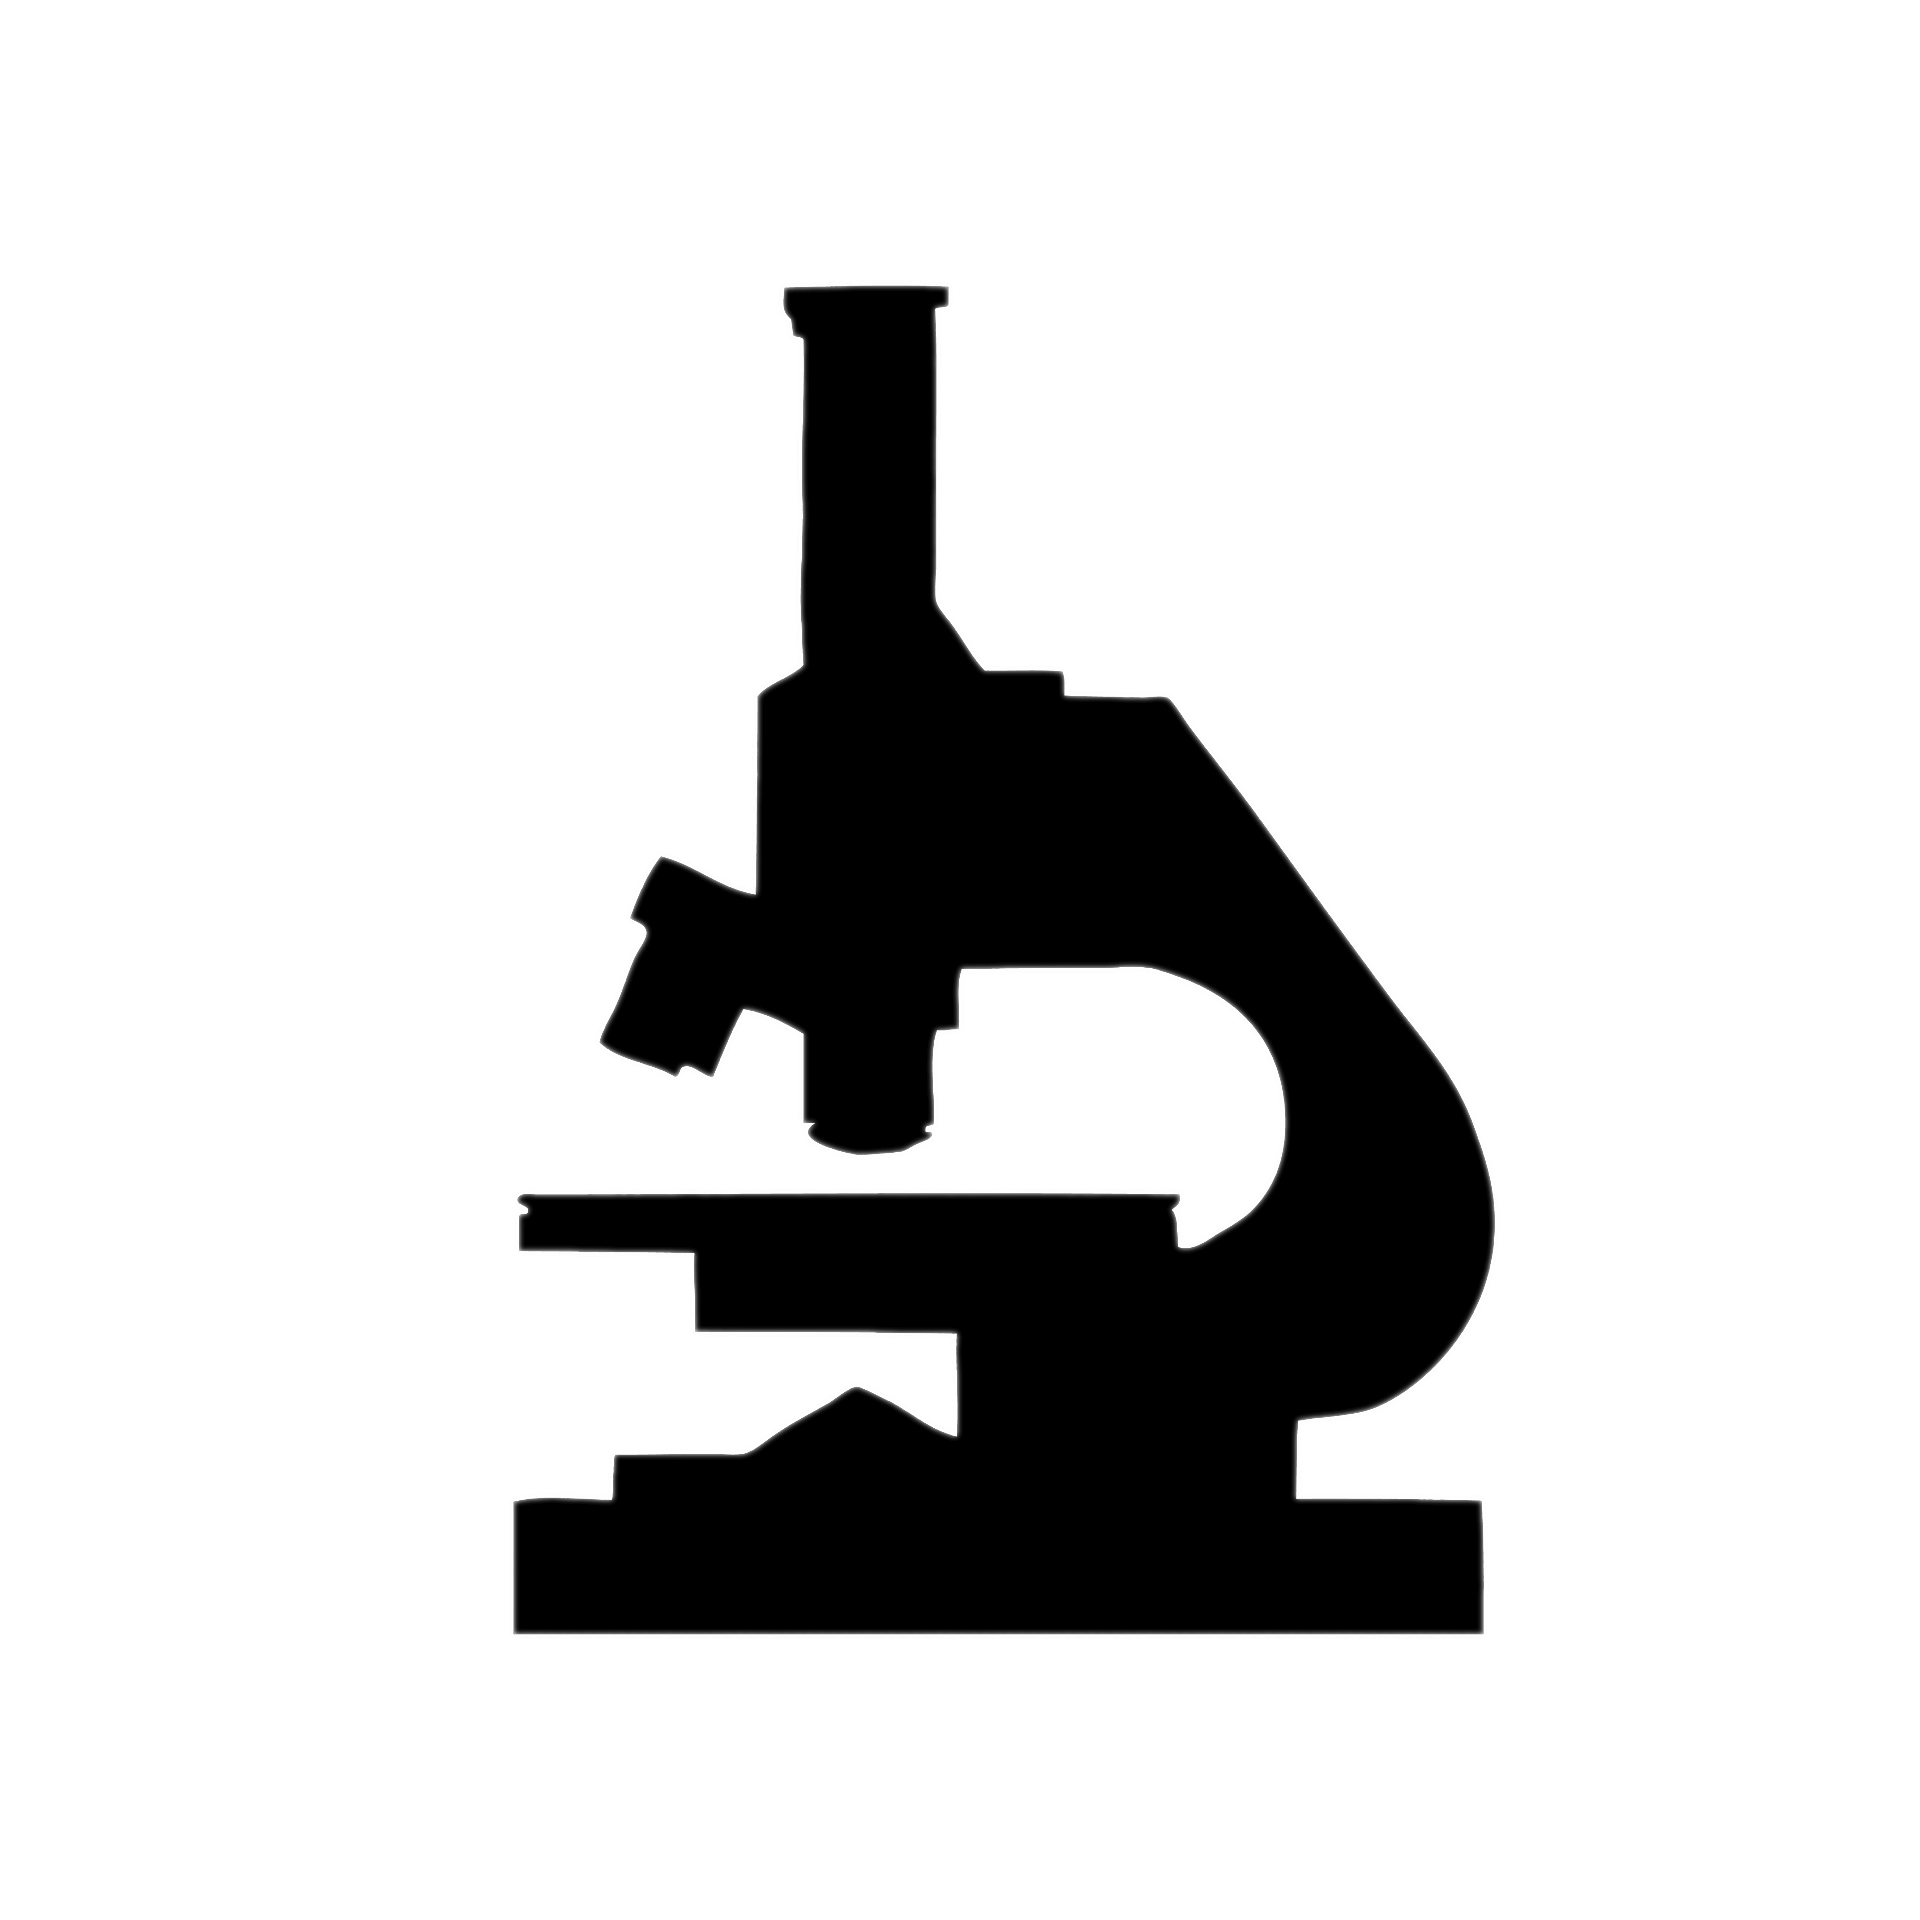 image download Silhouette transparent png stickpng. Microscope clipart.